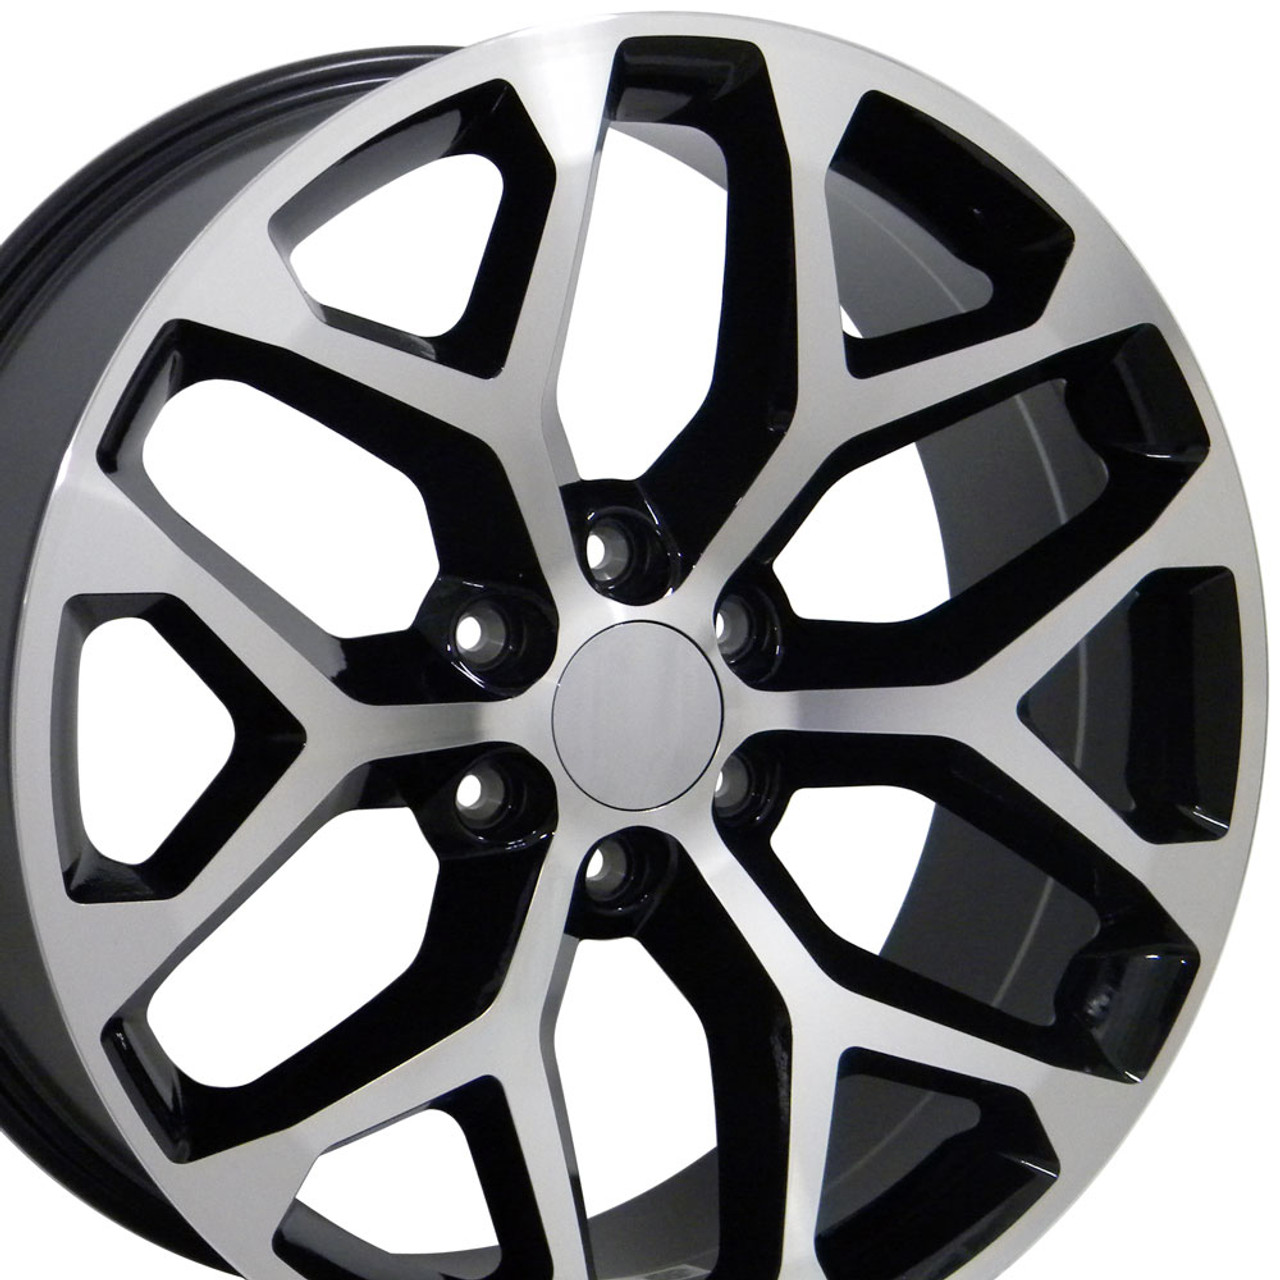 replica face a bolt wheel with rims machined fits set of sierra wheels black gmc accessories pattern chevrolet